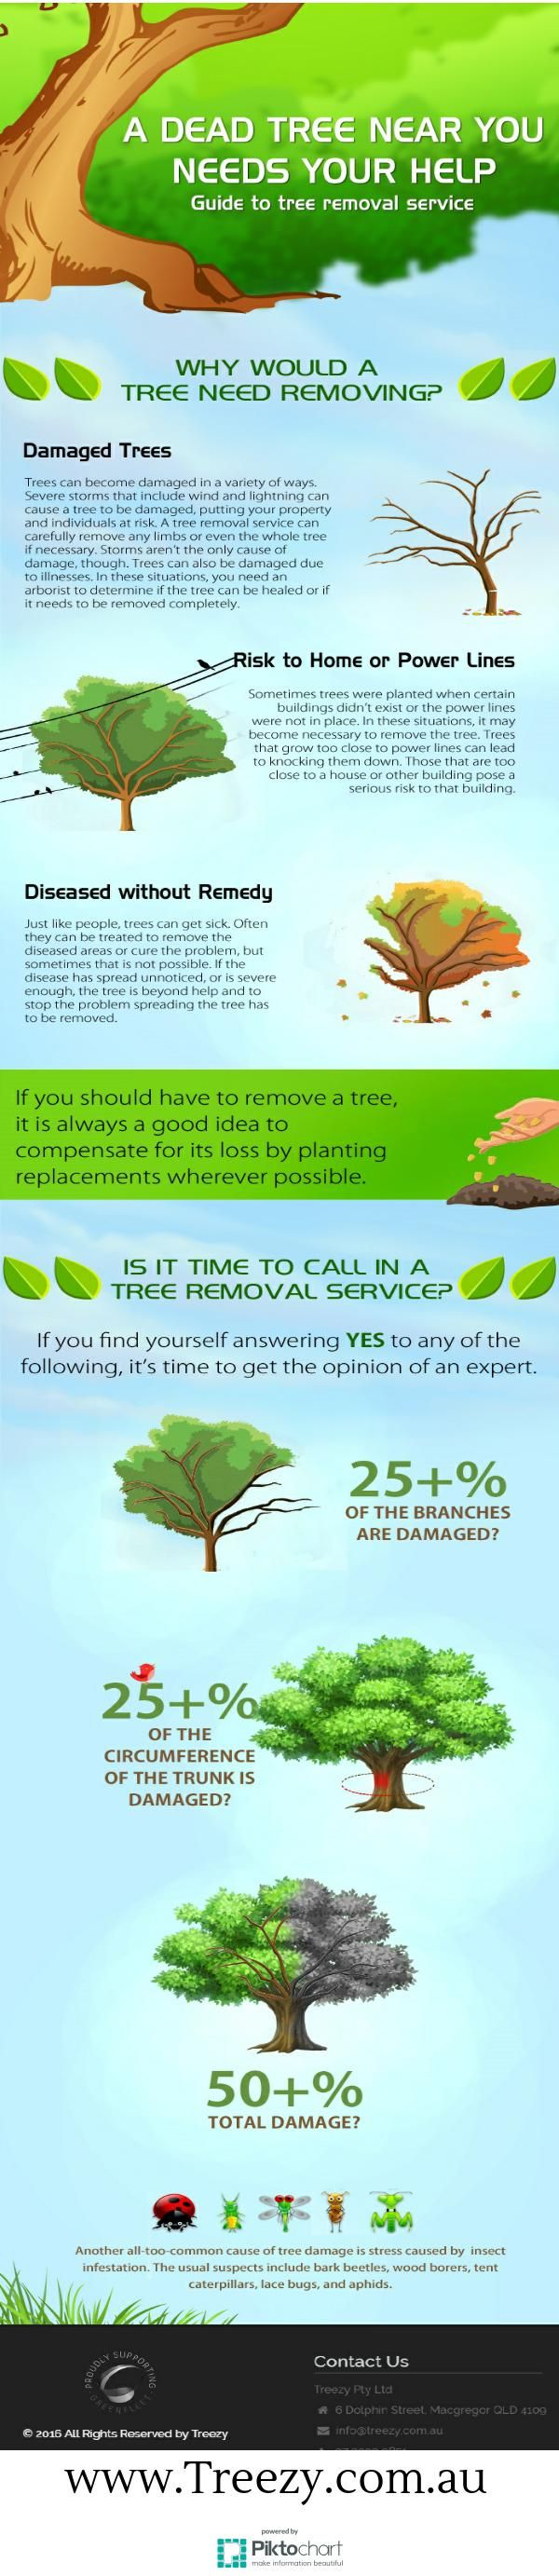 Guide to Tree Removal Services | Piktochart Infographic Editor